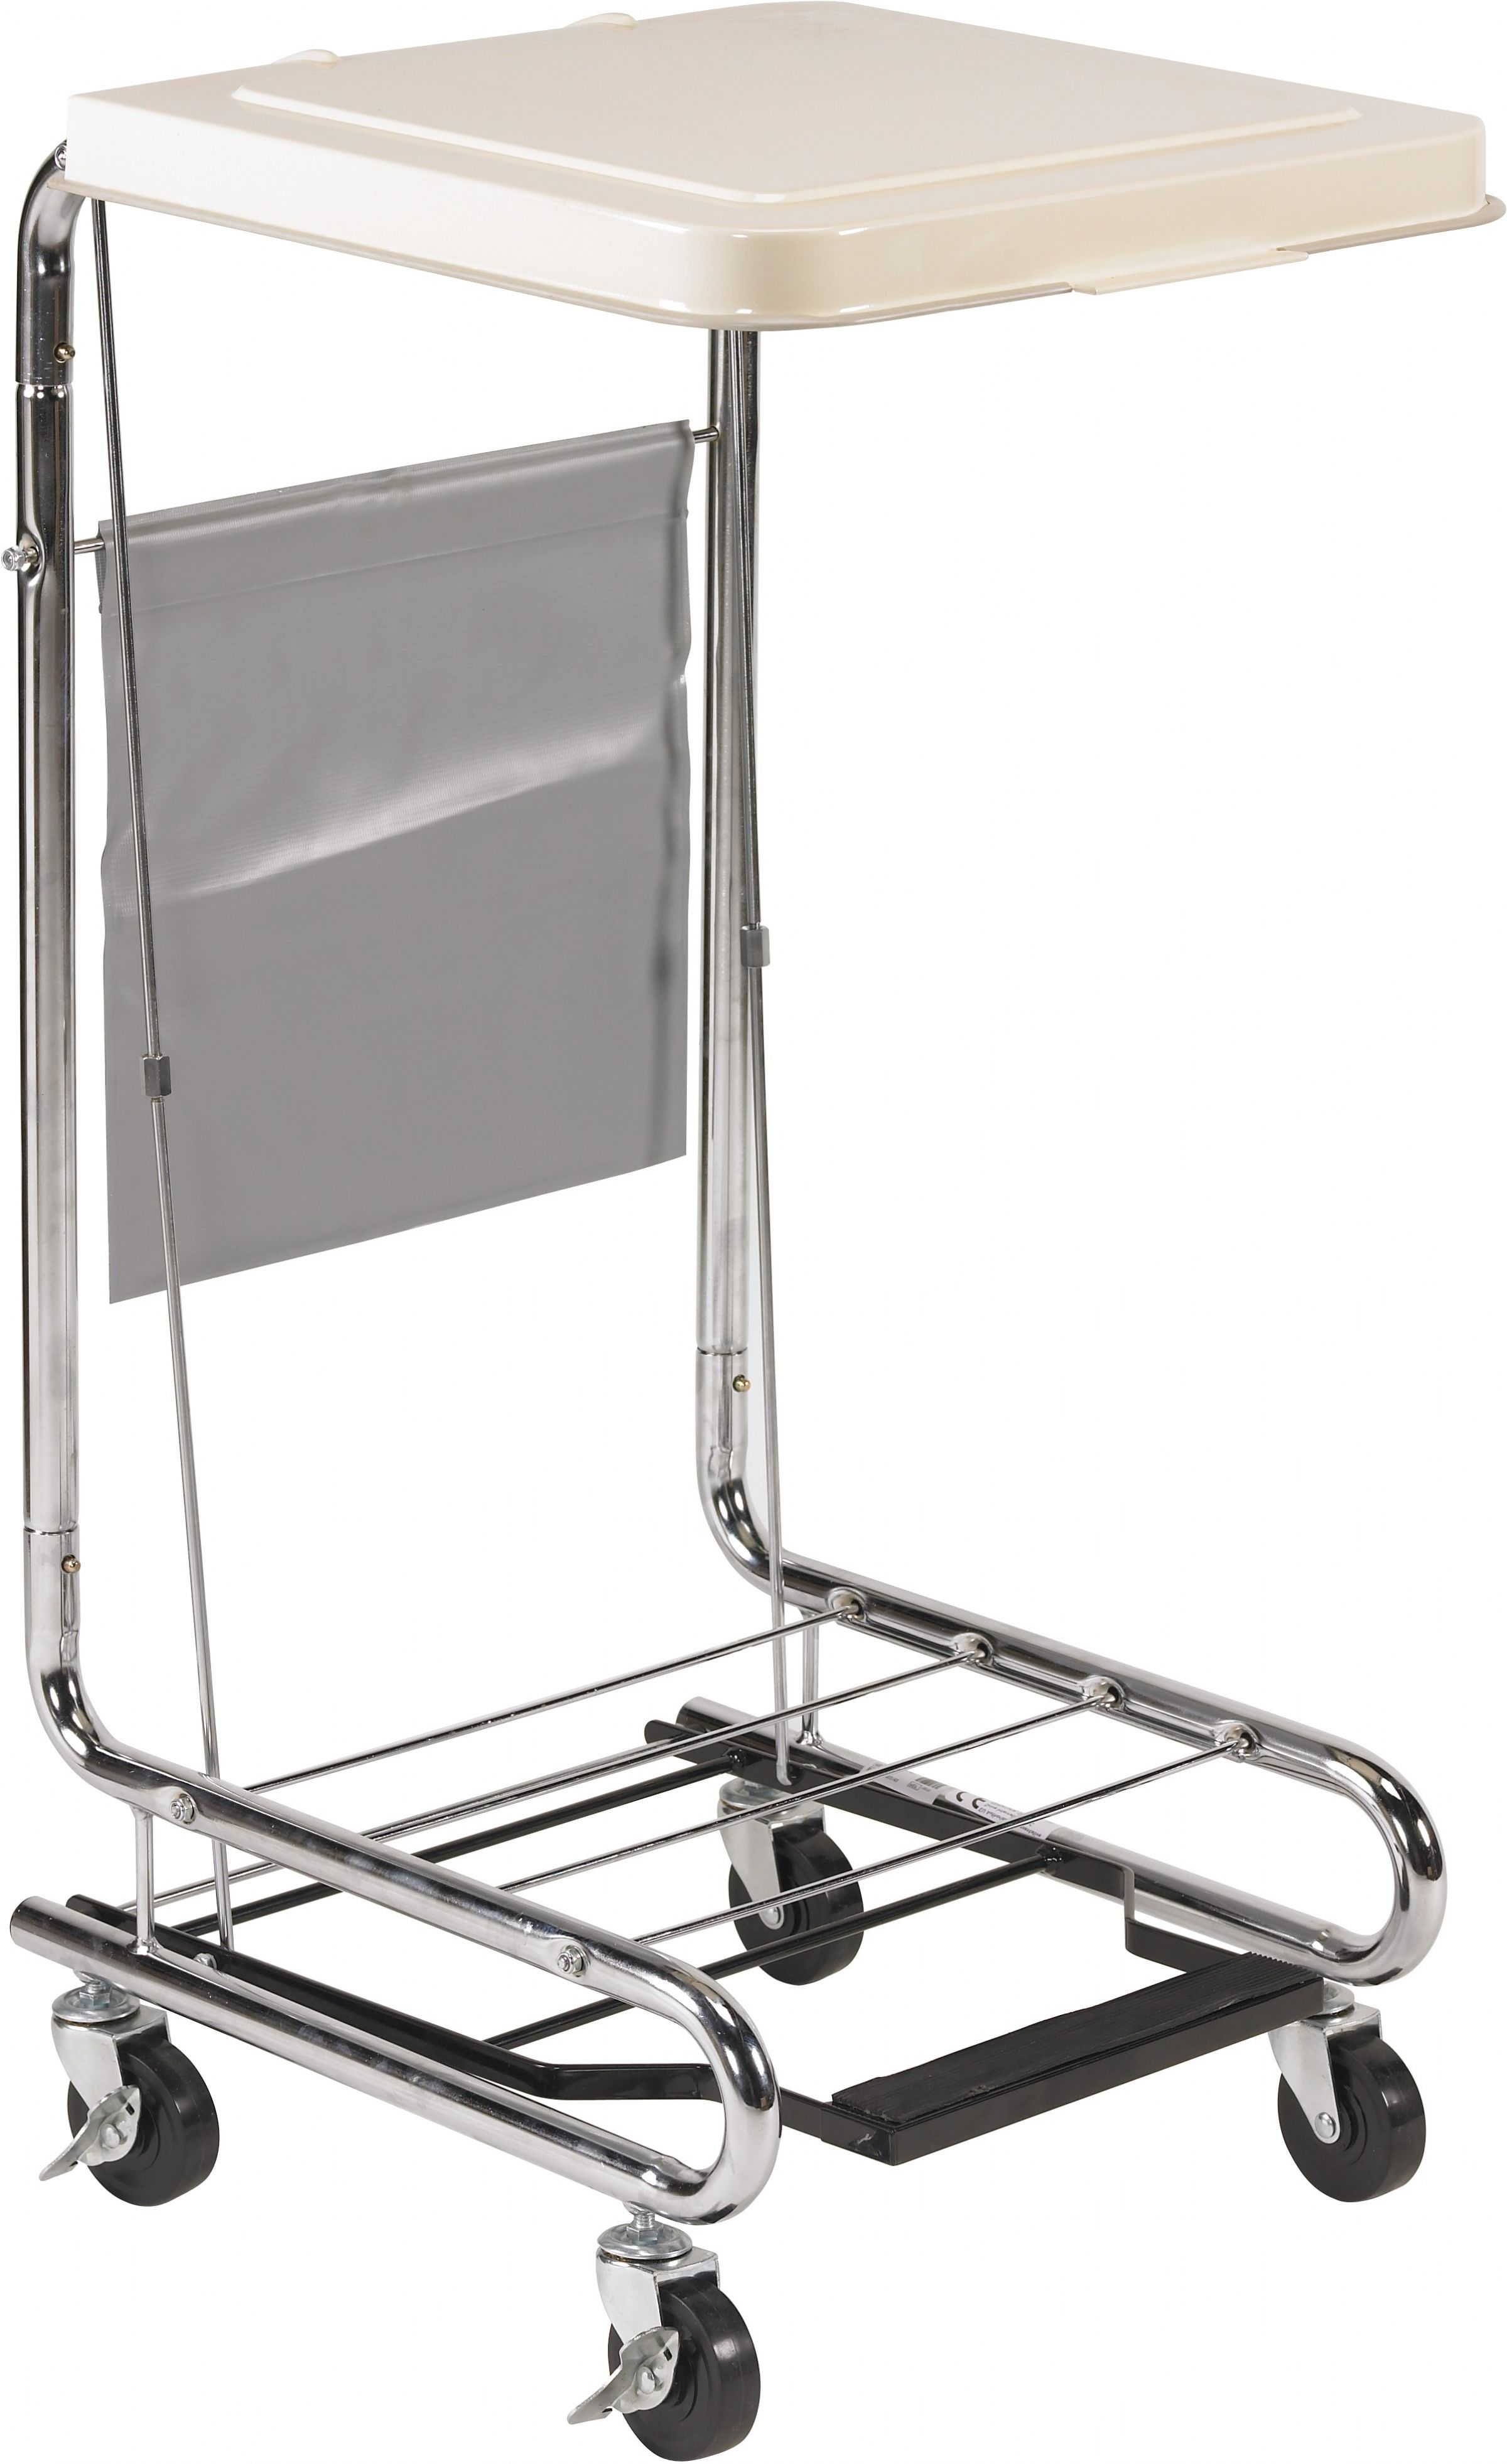 Drive Medical Chrome Plated Steel Laundry Hamper Stand